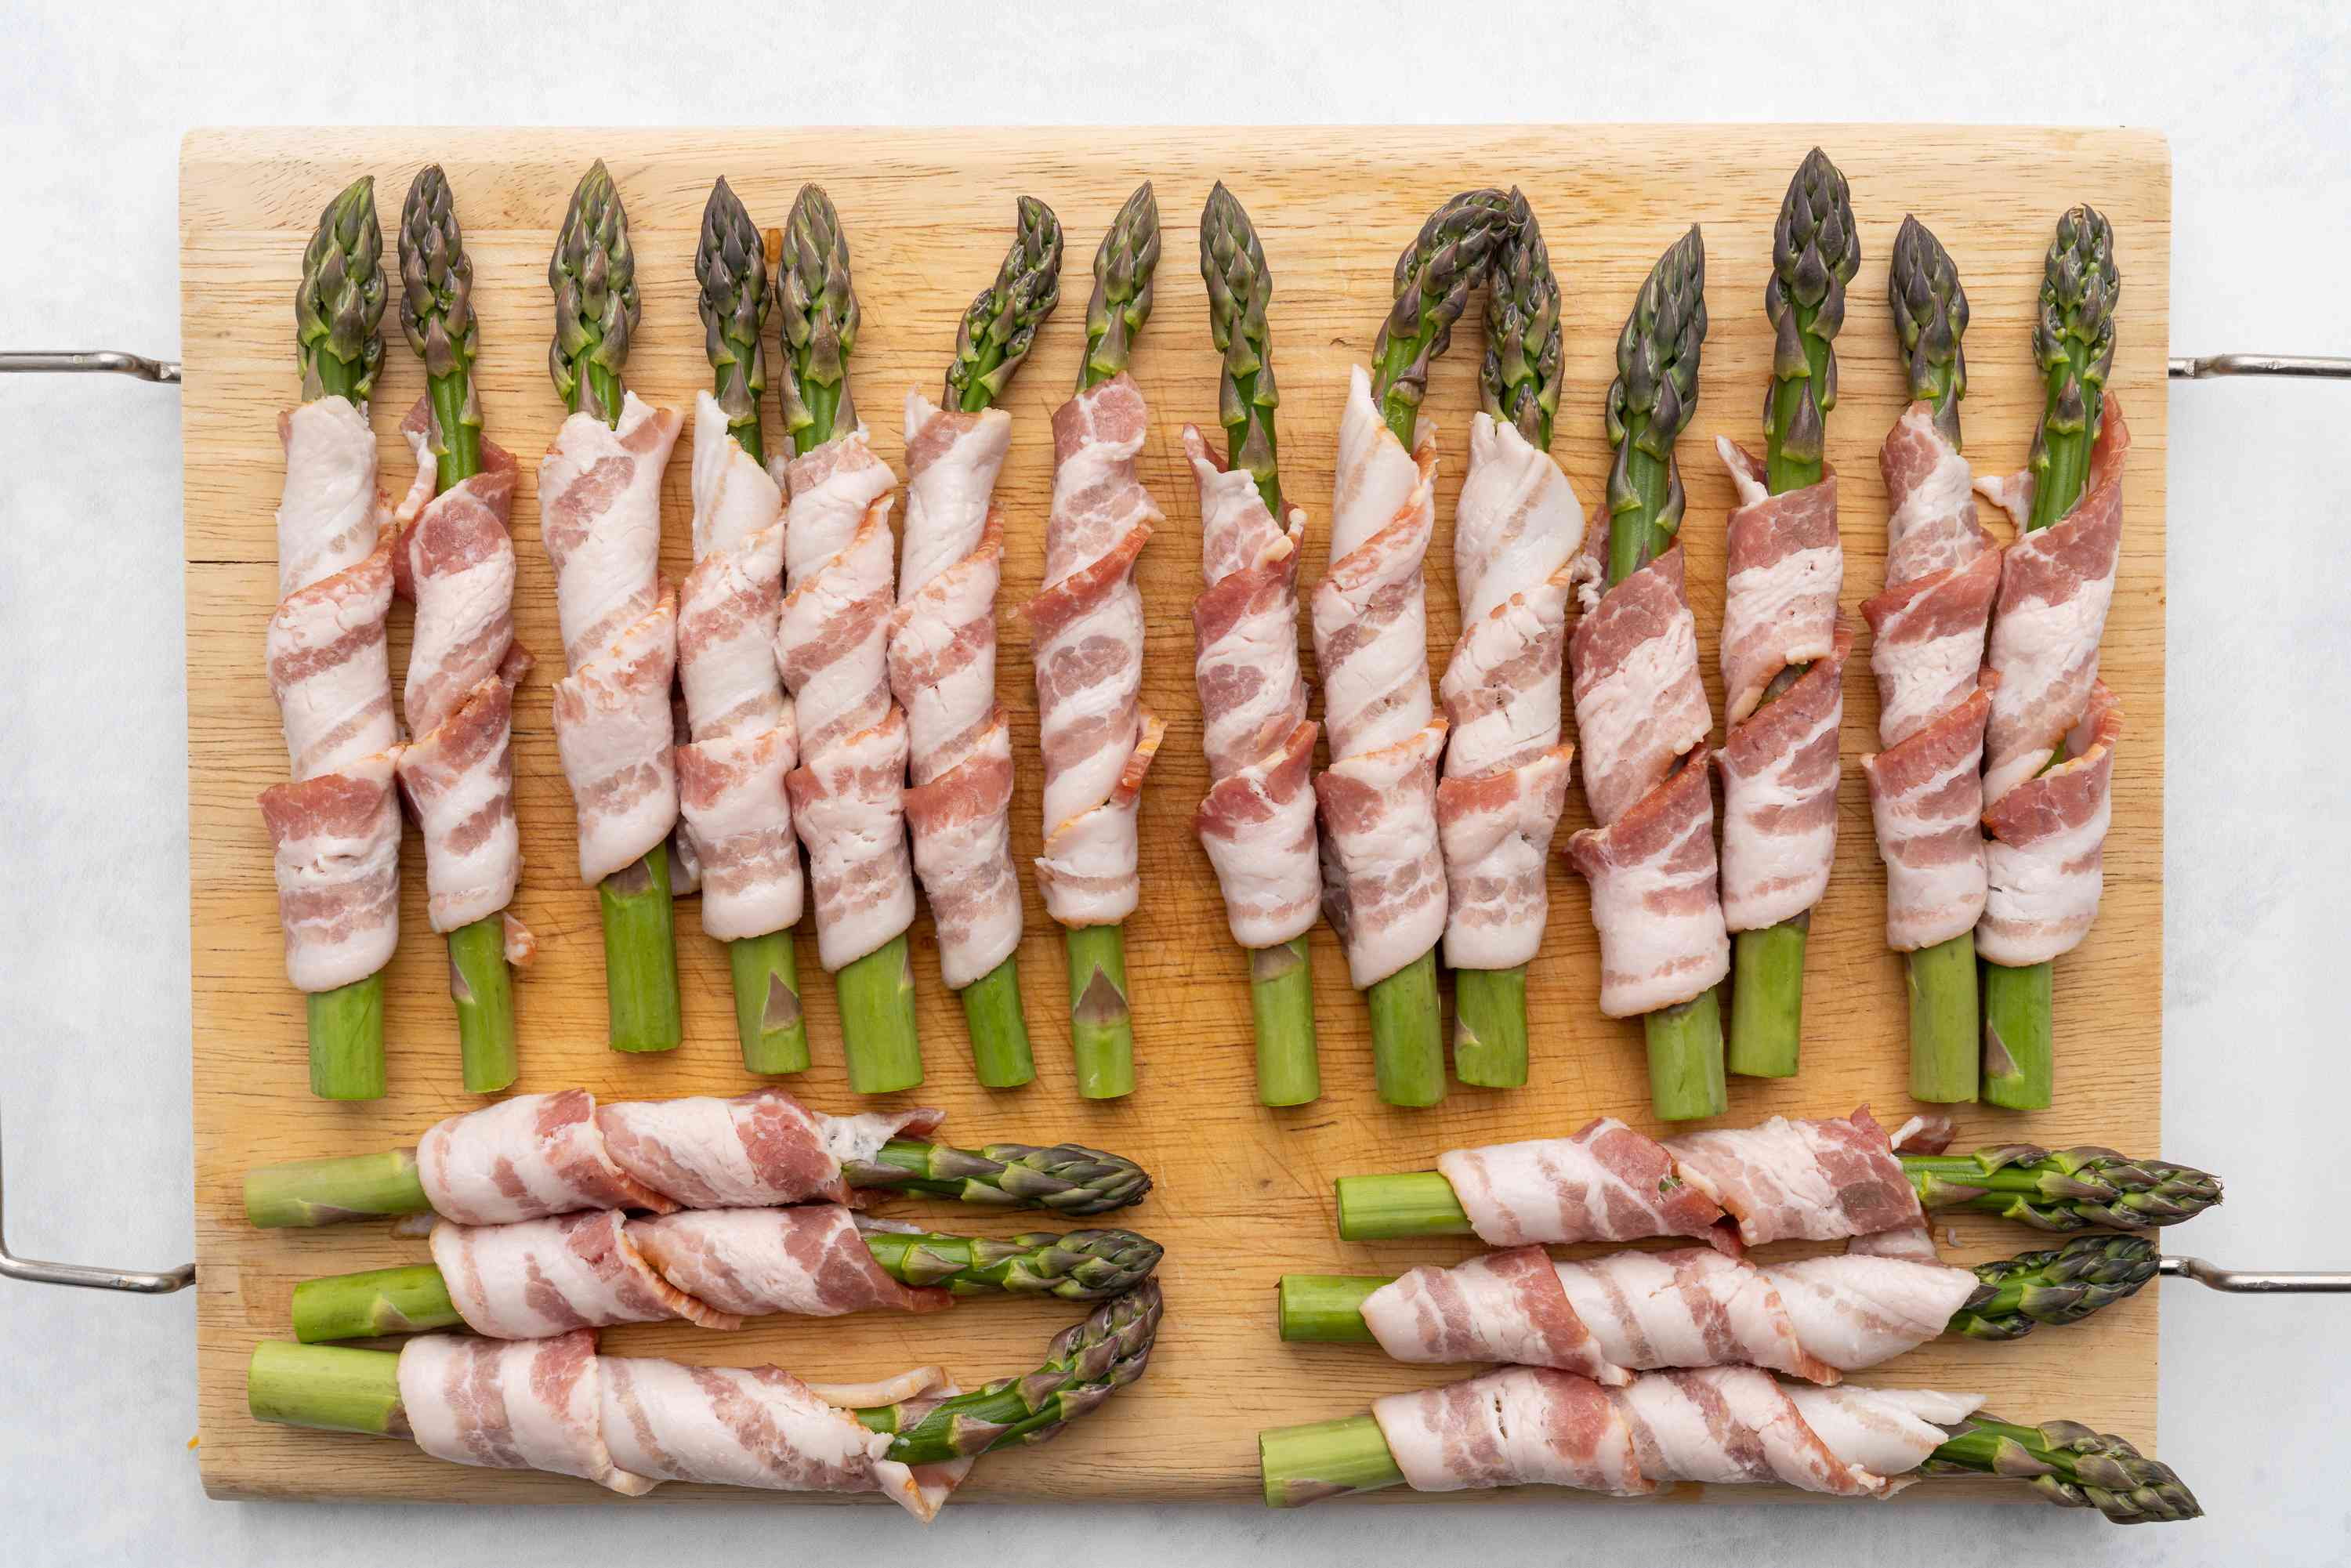 Bacon Wrapped Asparagus on a cutting board ready to be cooked